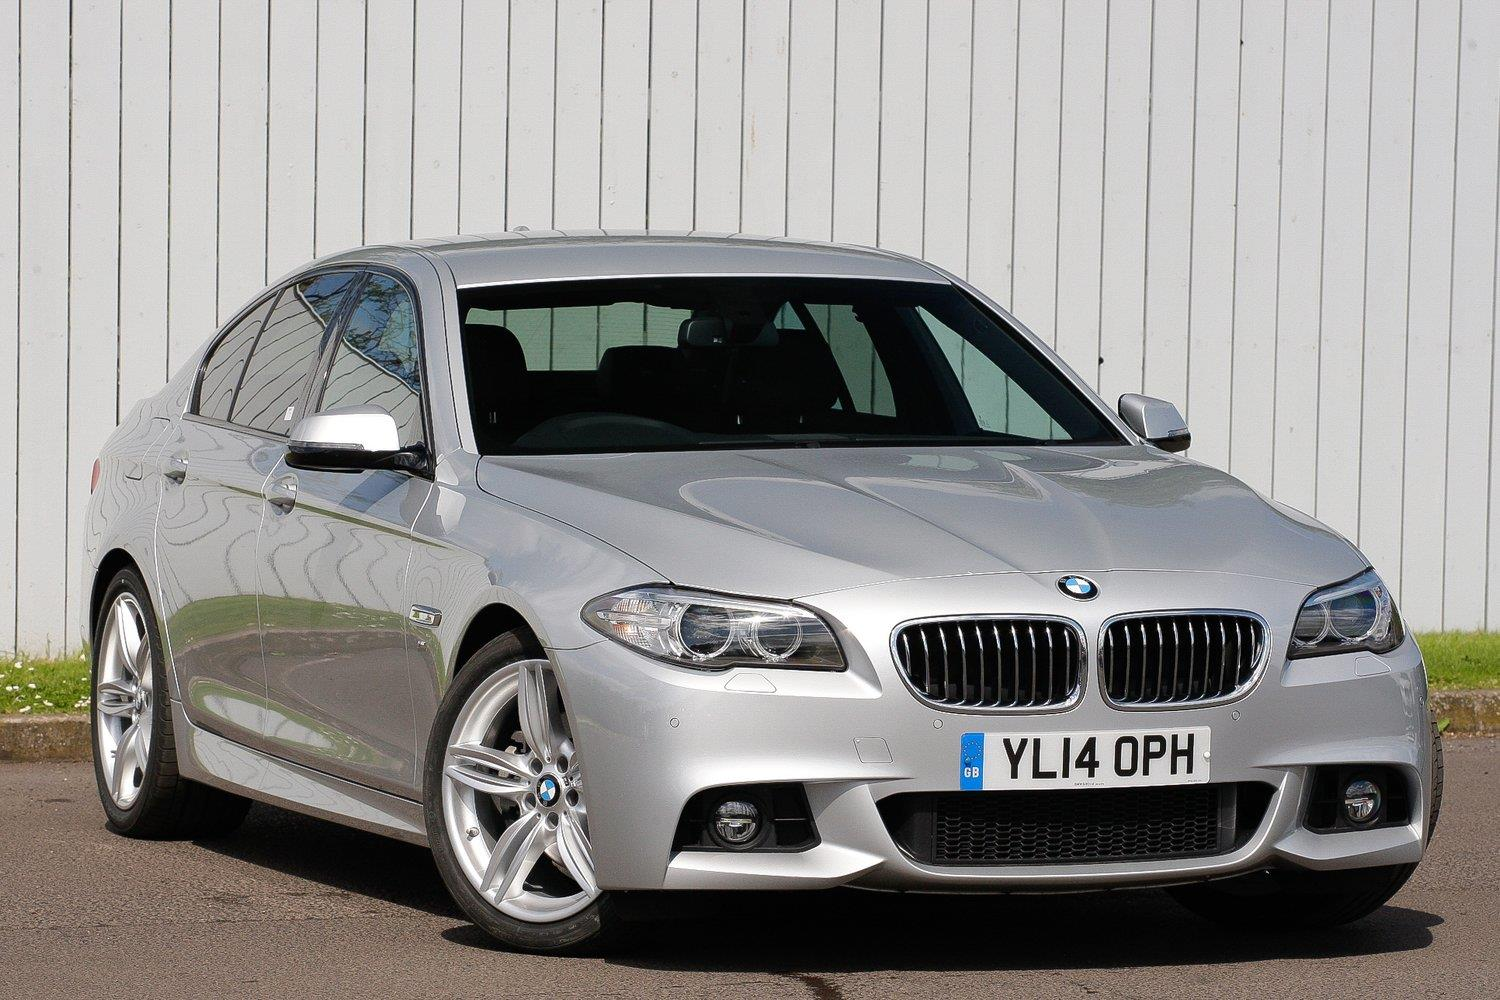 BMW 5 Series Saloon YL14OPH - Image 8